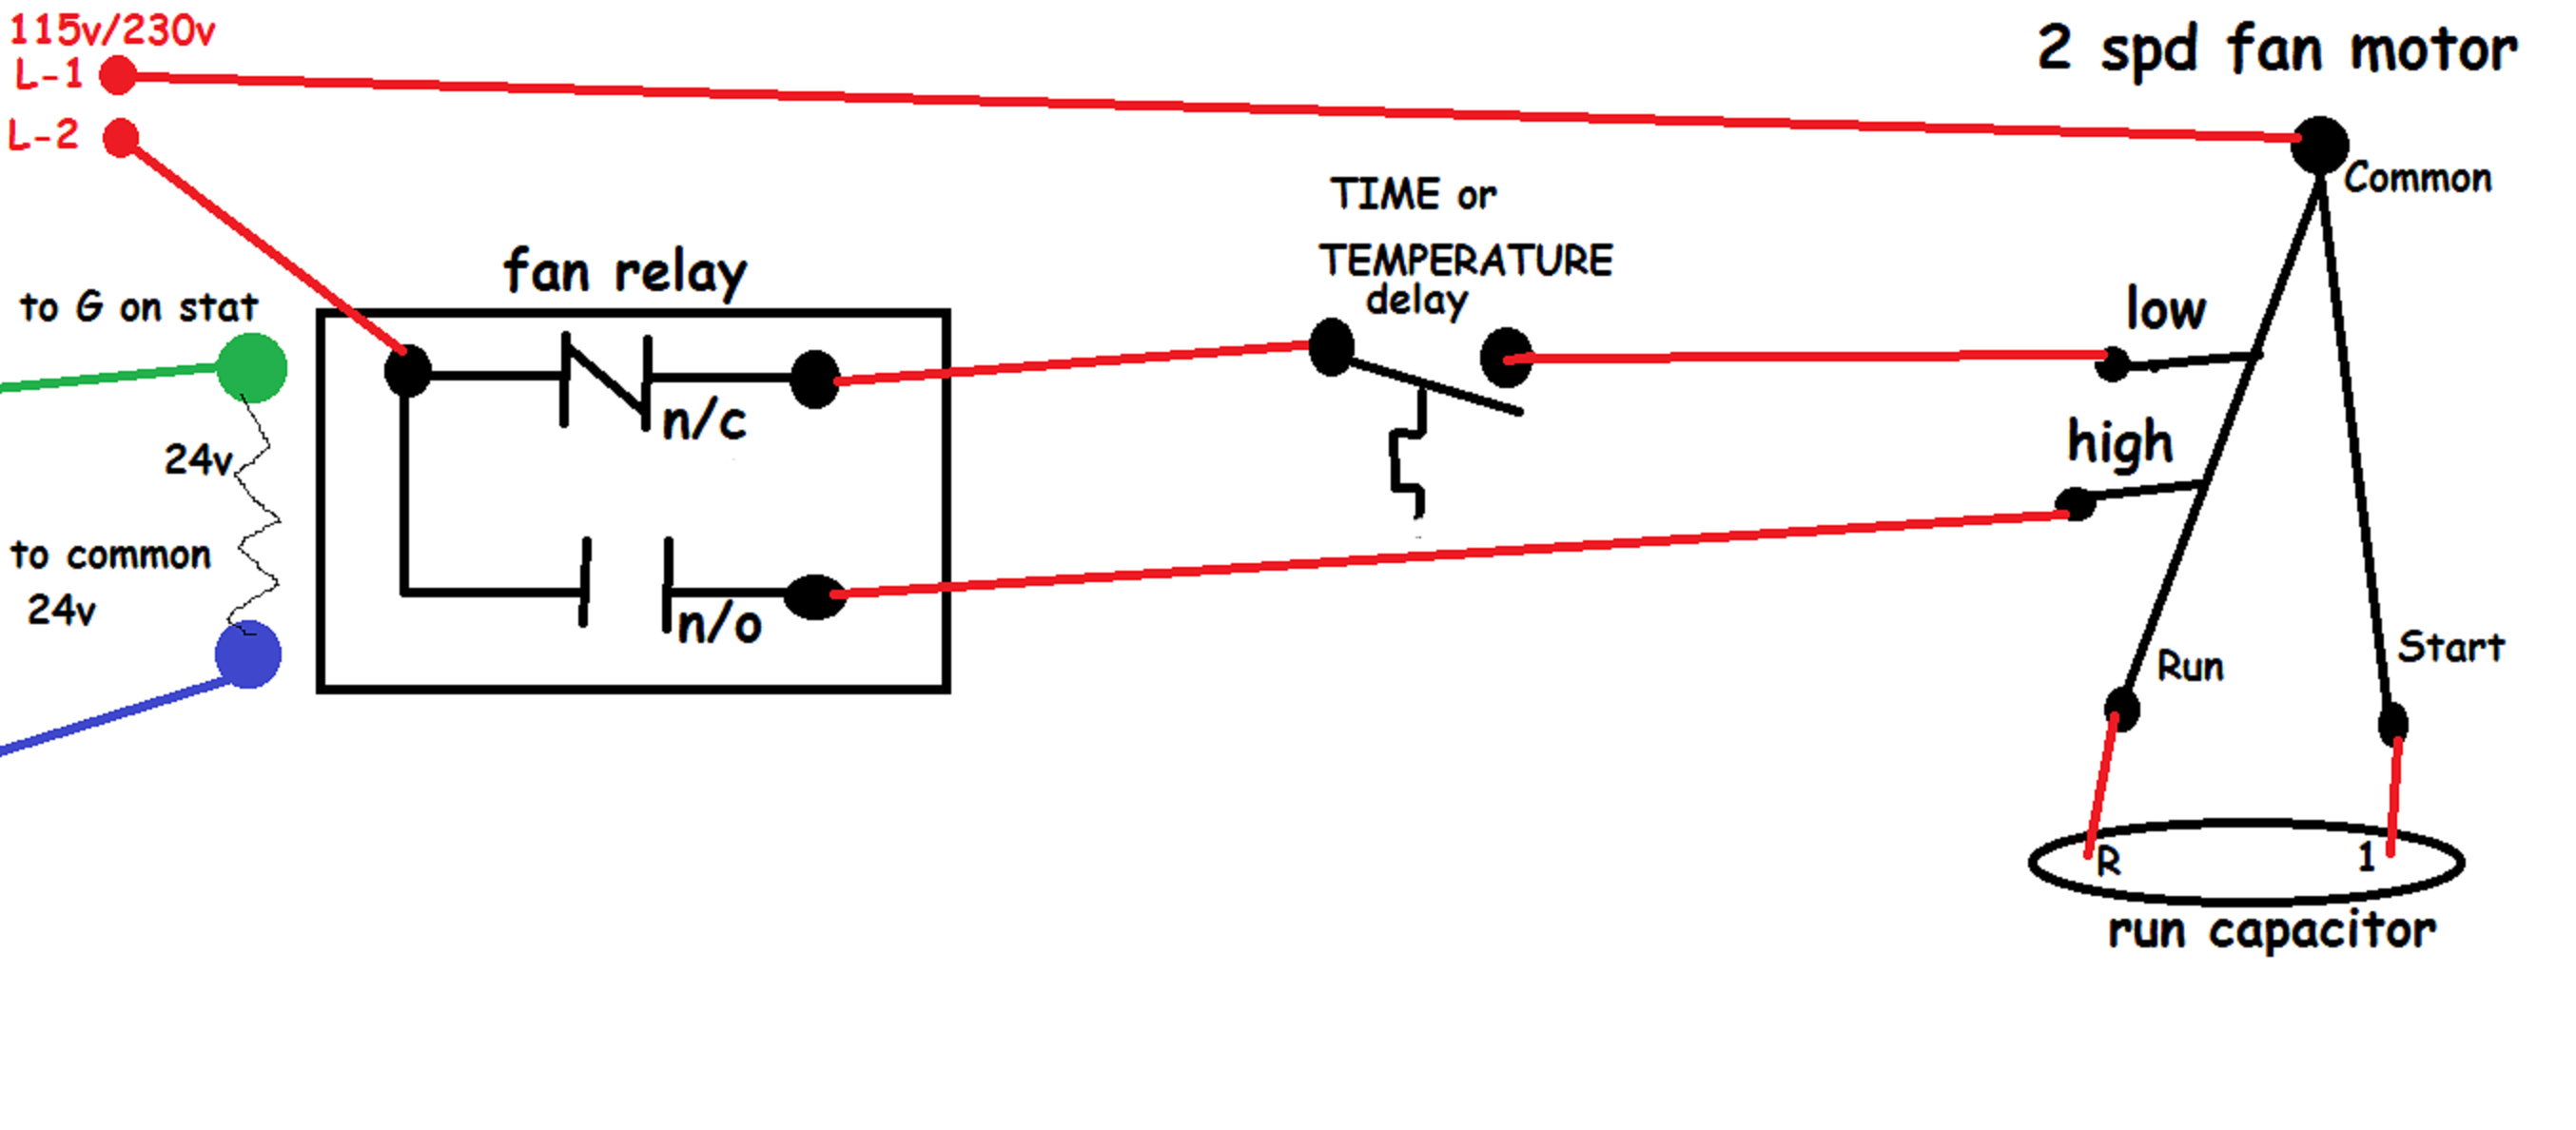 Unique Fan Relay Wiring Diagram Hvac  Diagram  Diagramsample  Diagramtemplate  Wiringdiagram